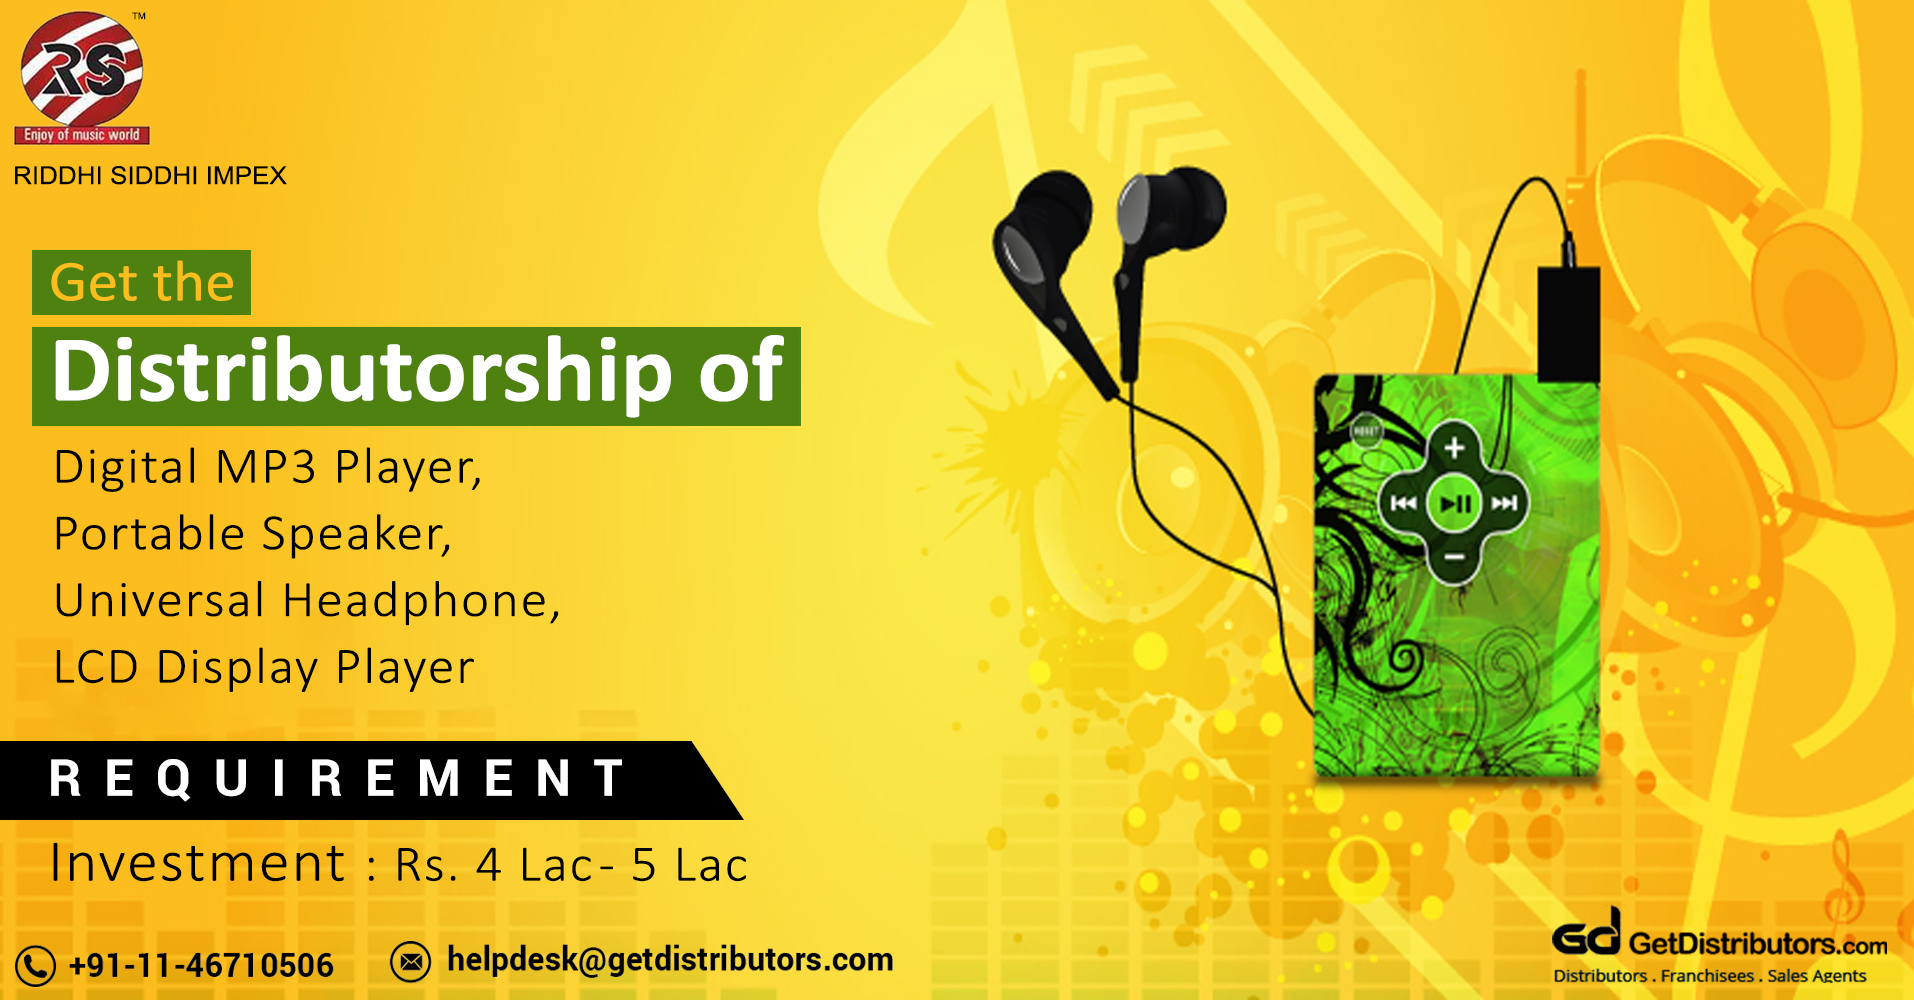 High Quality Portable Speaker, Headphone & MP3 Player Distributorship At Affordable Prices